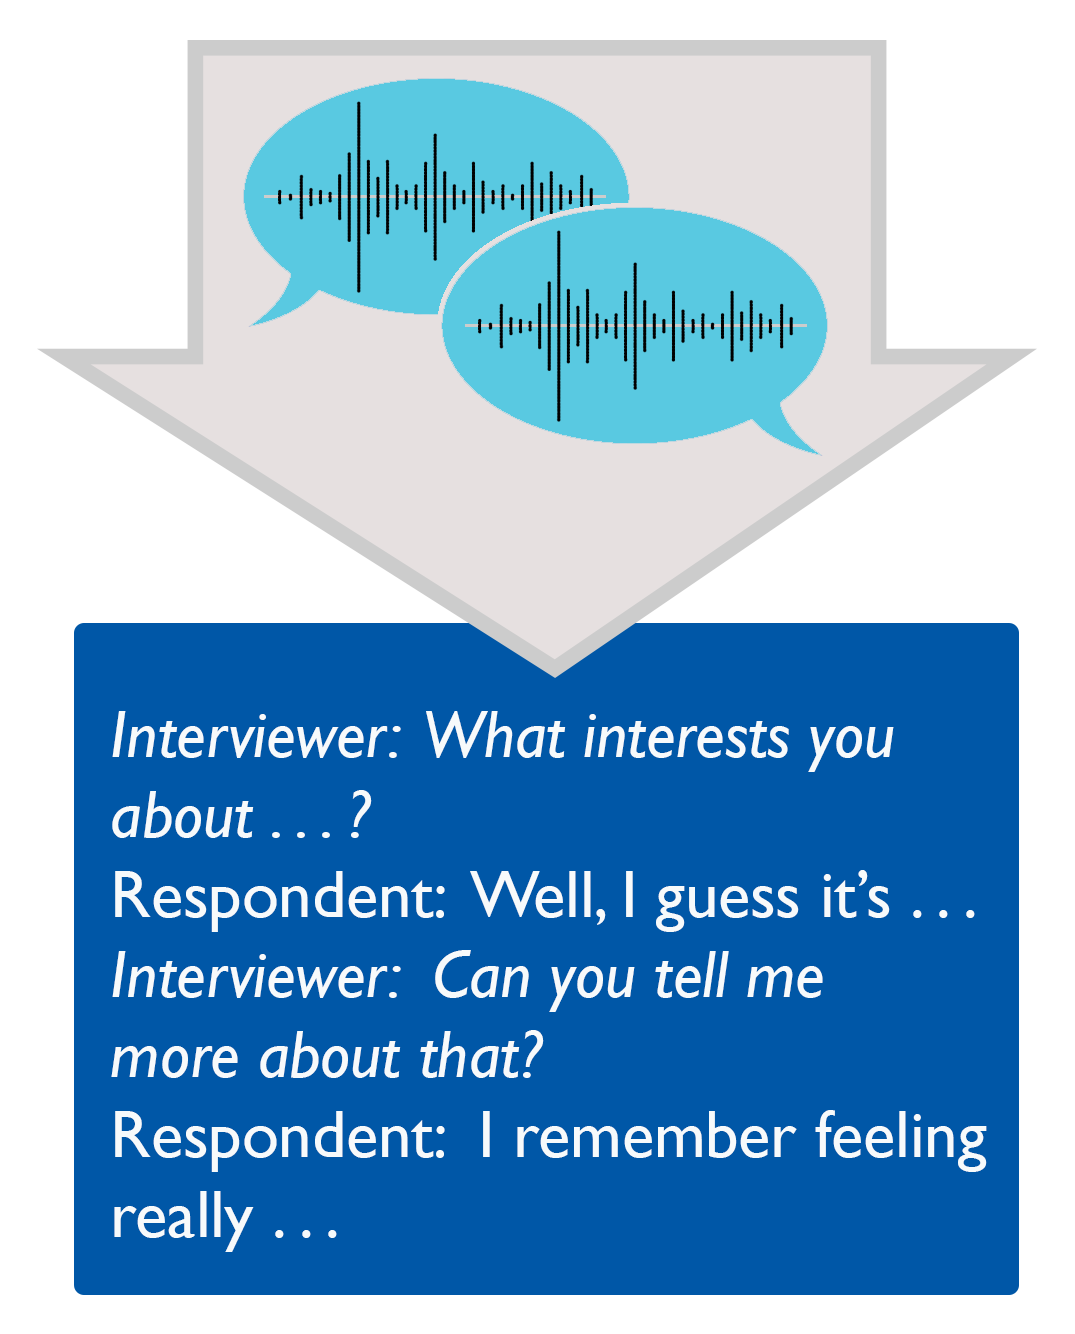 Two speech bubbles with sound waves enclosed in arrow pointing to a text transcript